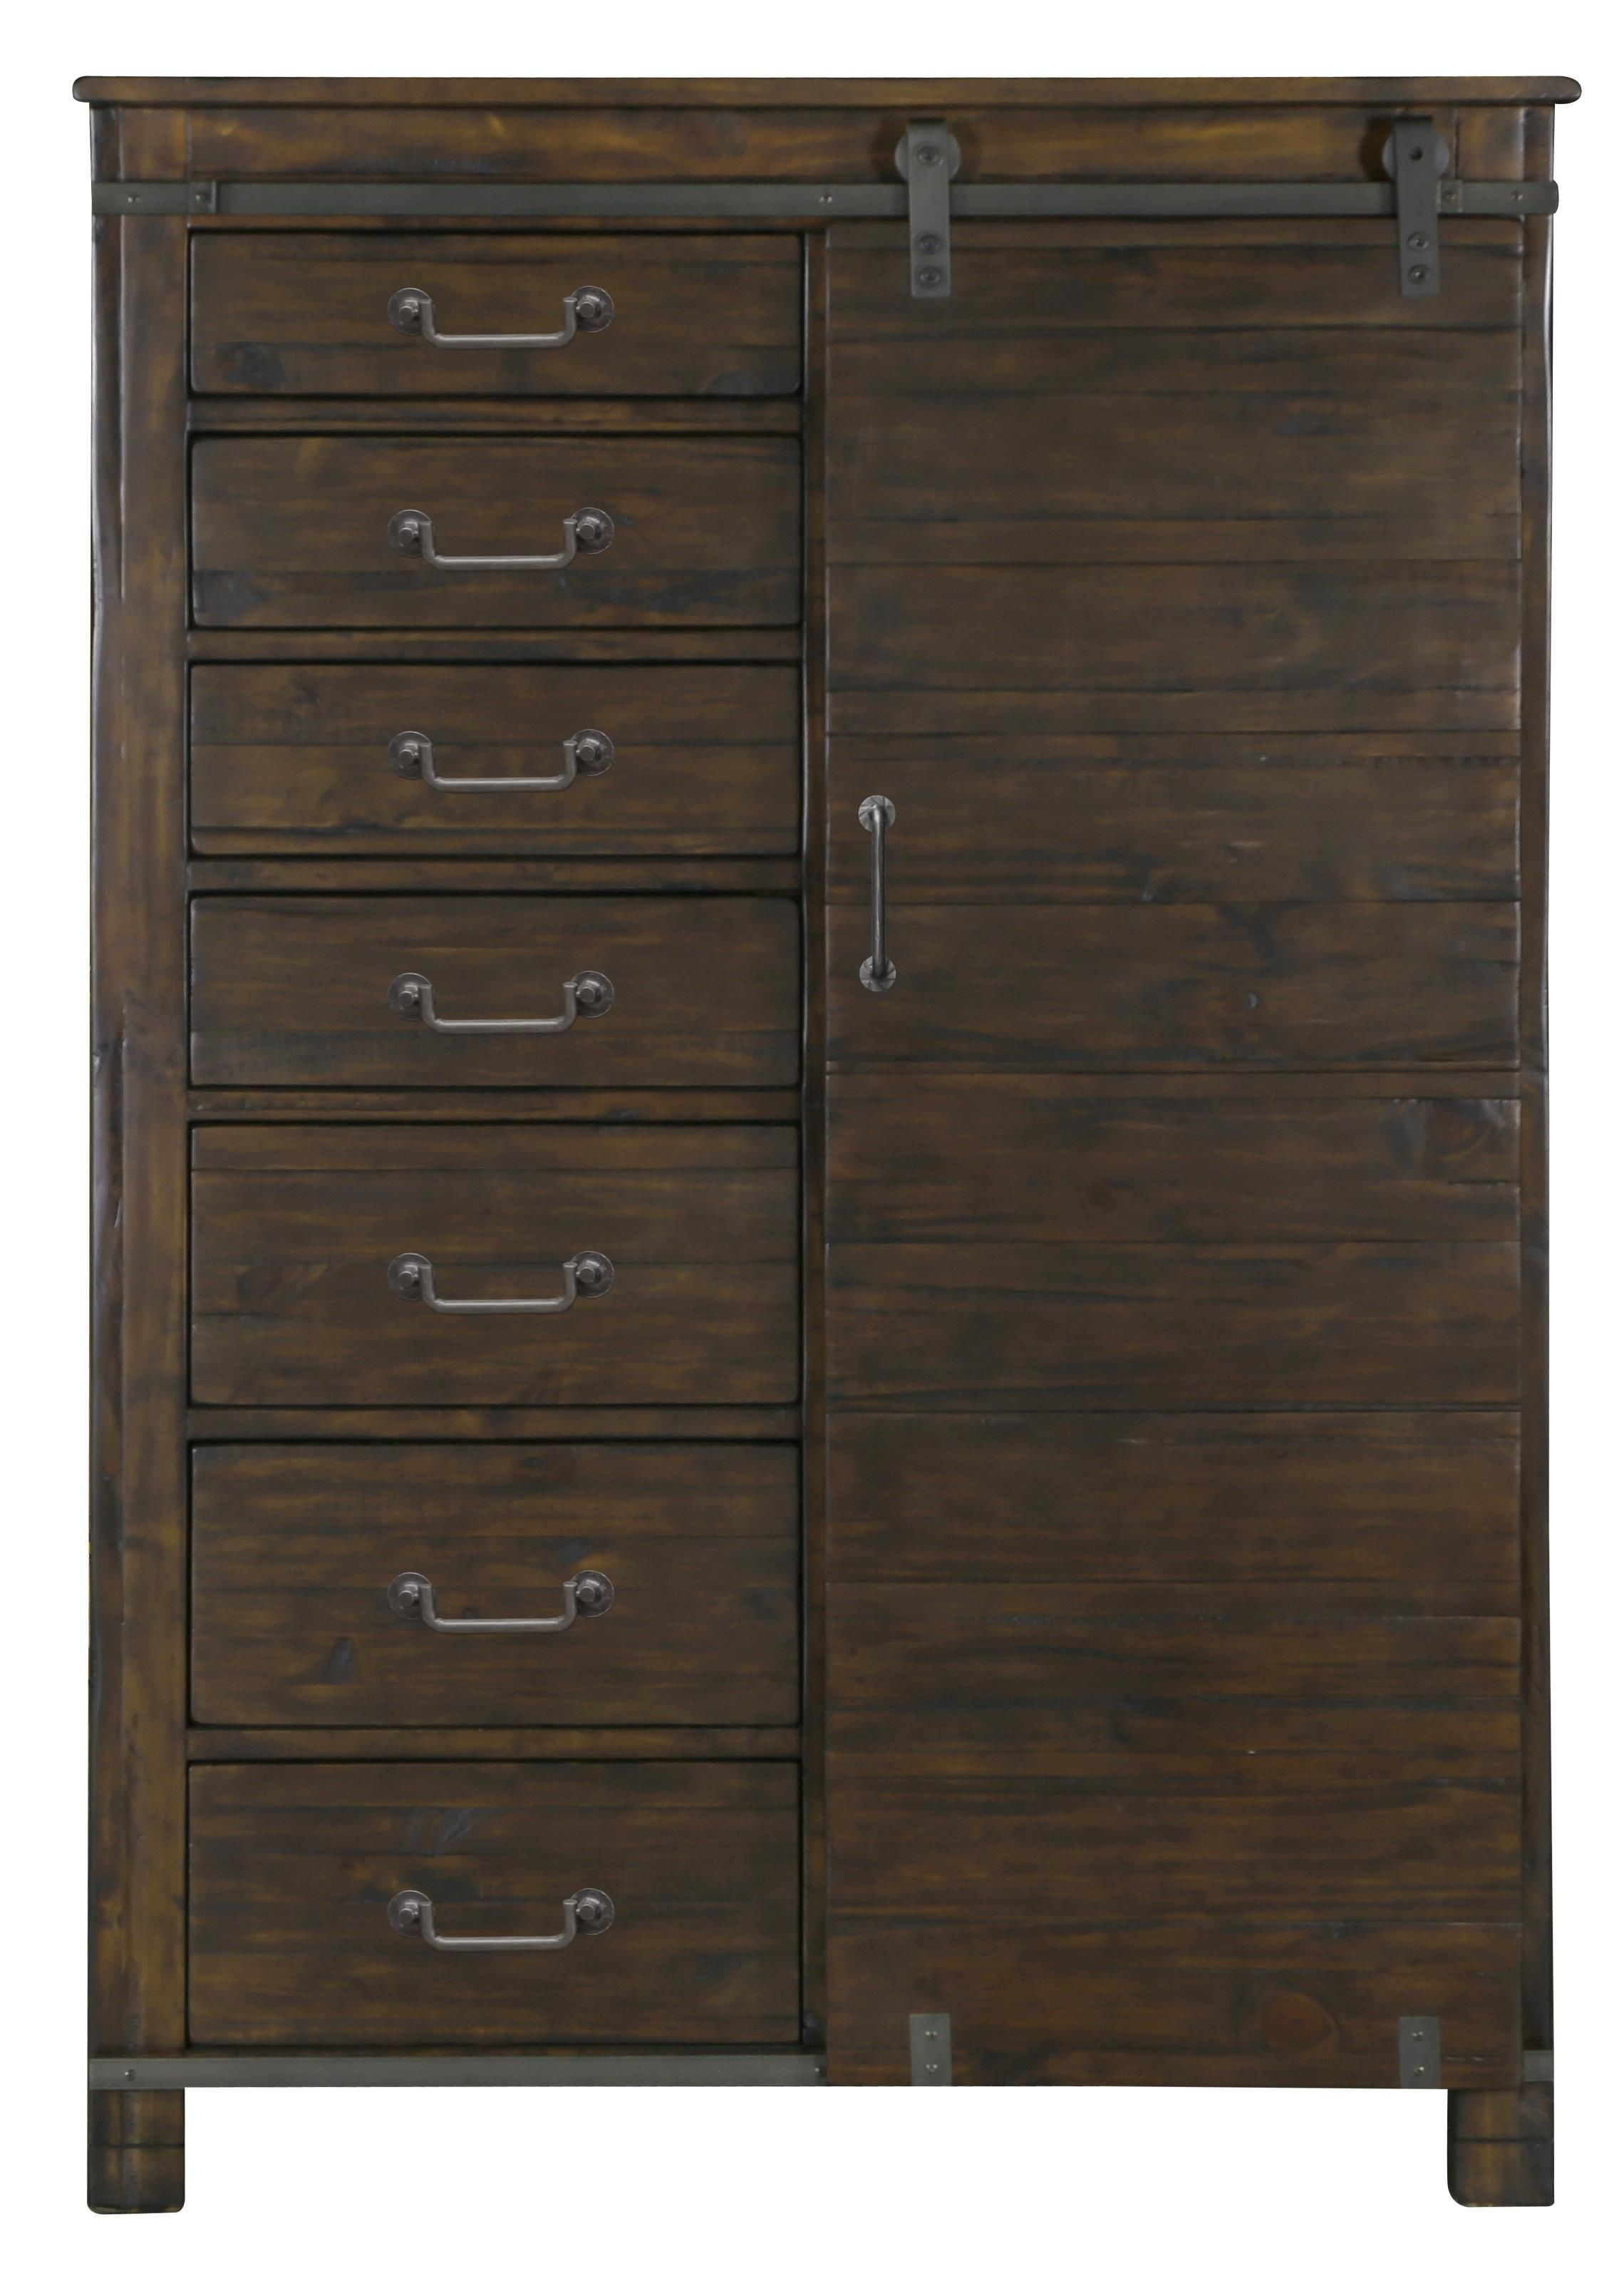 Pine Hill Door Chest By Magnussen Home At Olinde S Furniture This